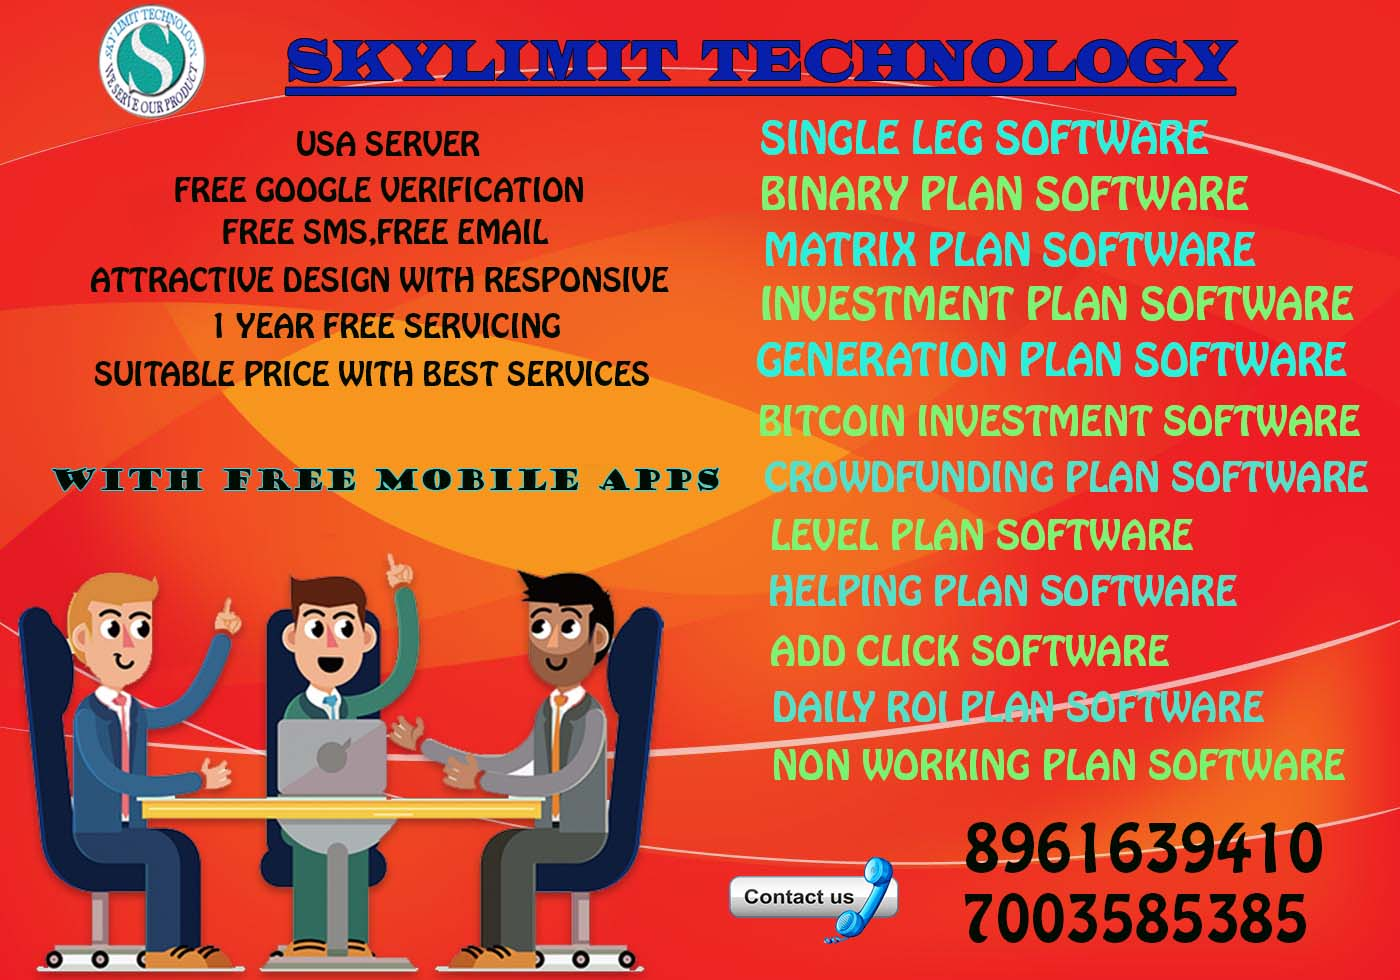 ANY TYPE OF MLM SOFTWARE WITH FREE MOBILE APPS AT CHEAPEST RATES..CALL 7003585385